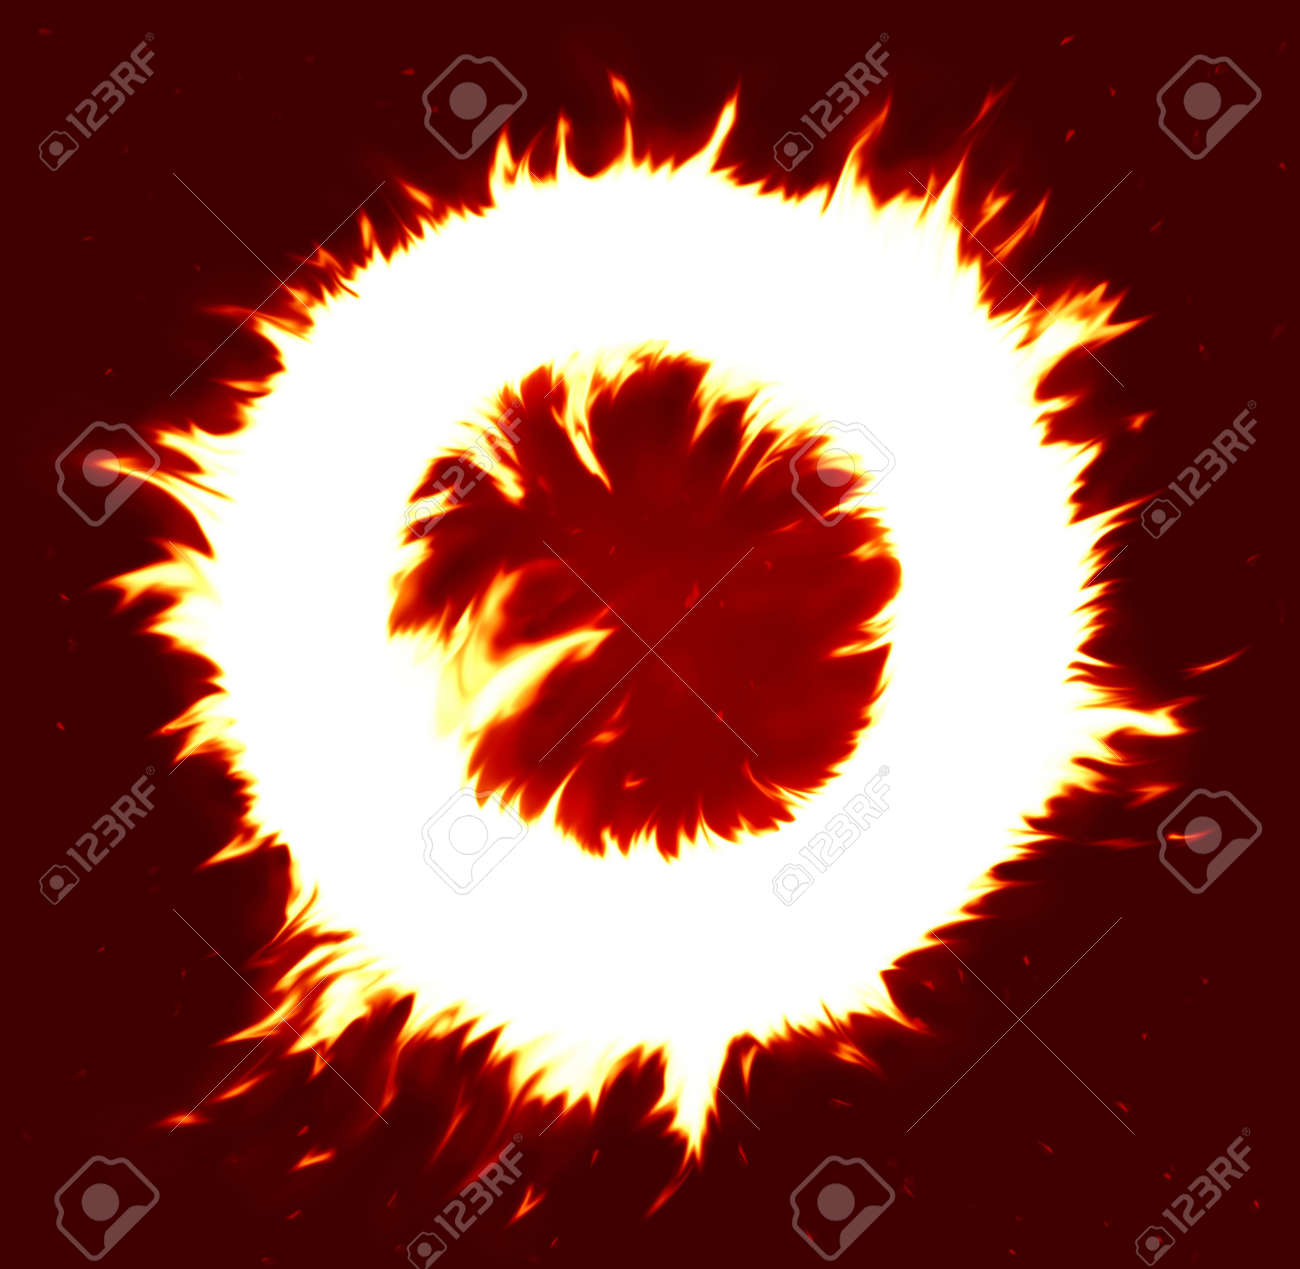 fire circle (special f/x made in P/S, place your text on white area) Stock Photo - 872883